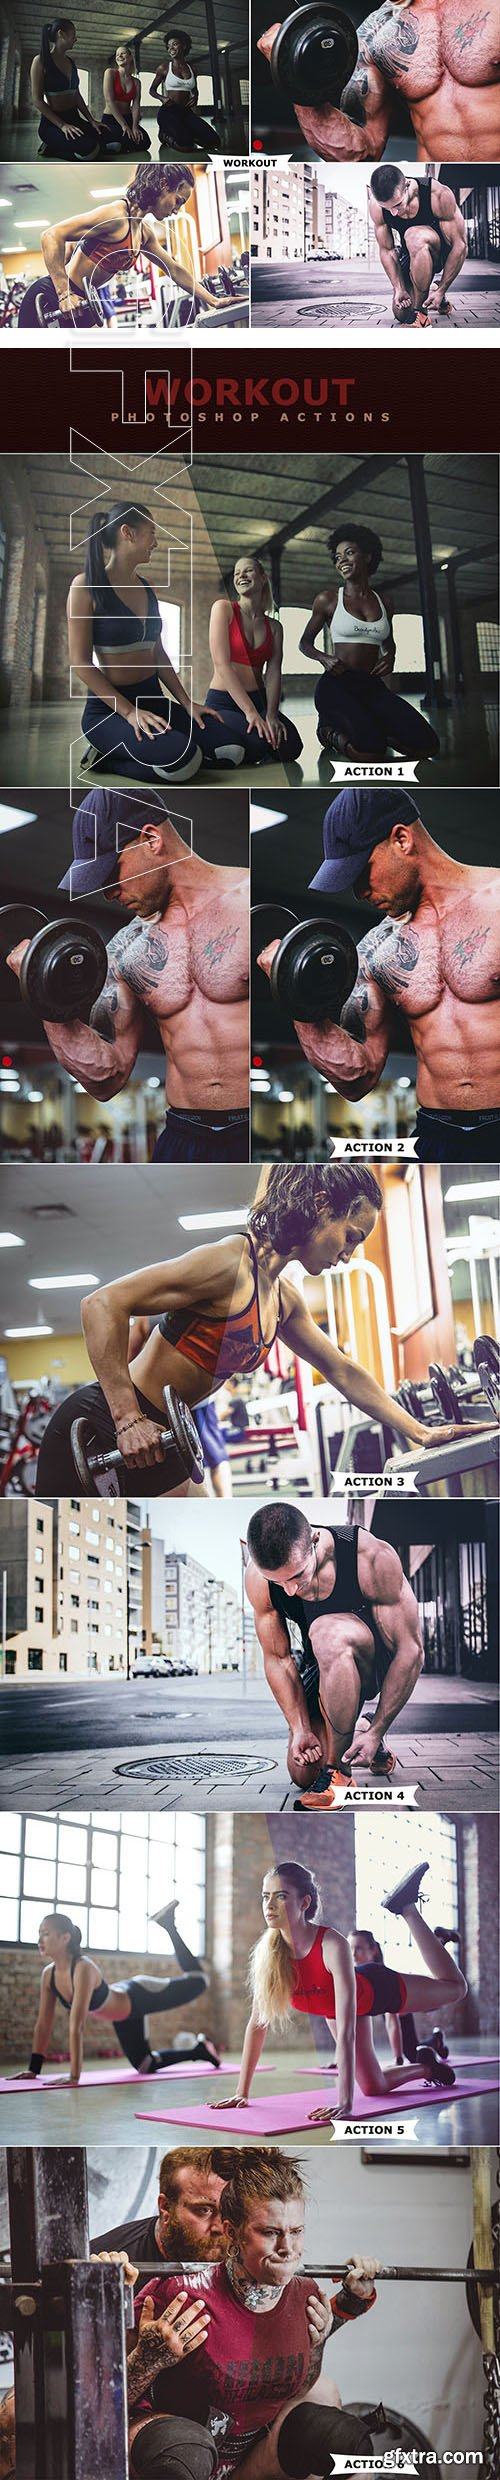 CreativeMarket - Workout Photoshop Actions 3175119